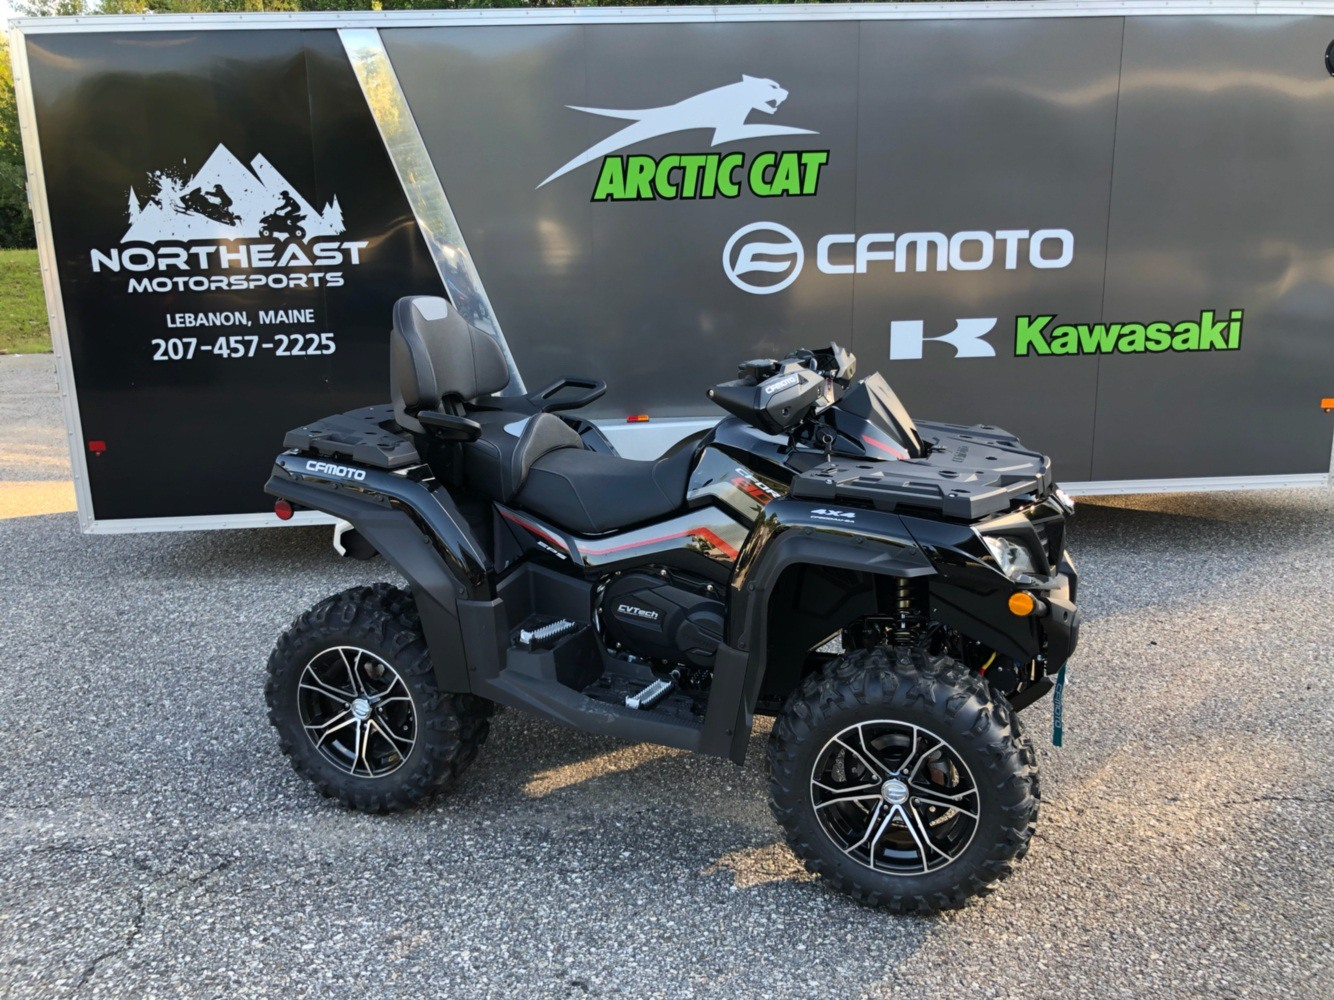 2019 CFMOTO CForce 800 XC in Lebanon, Maine - Photo 1